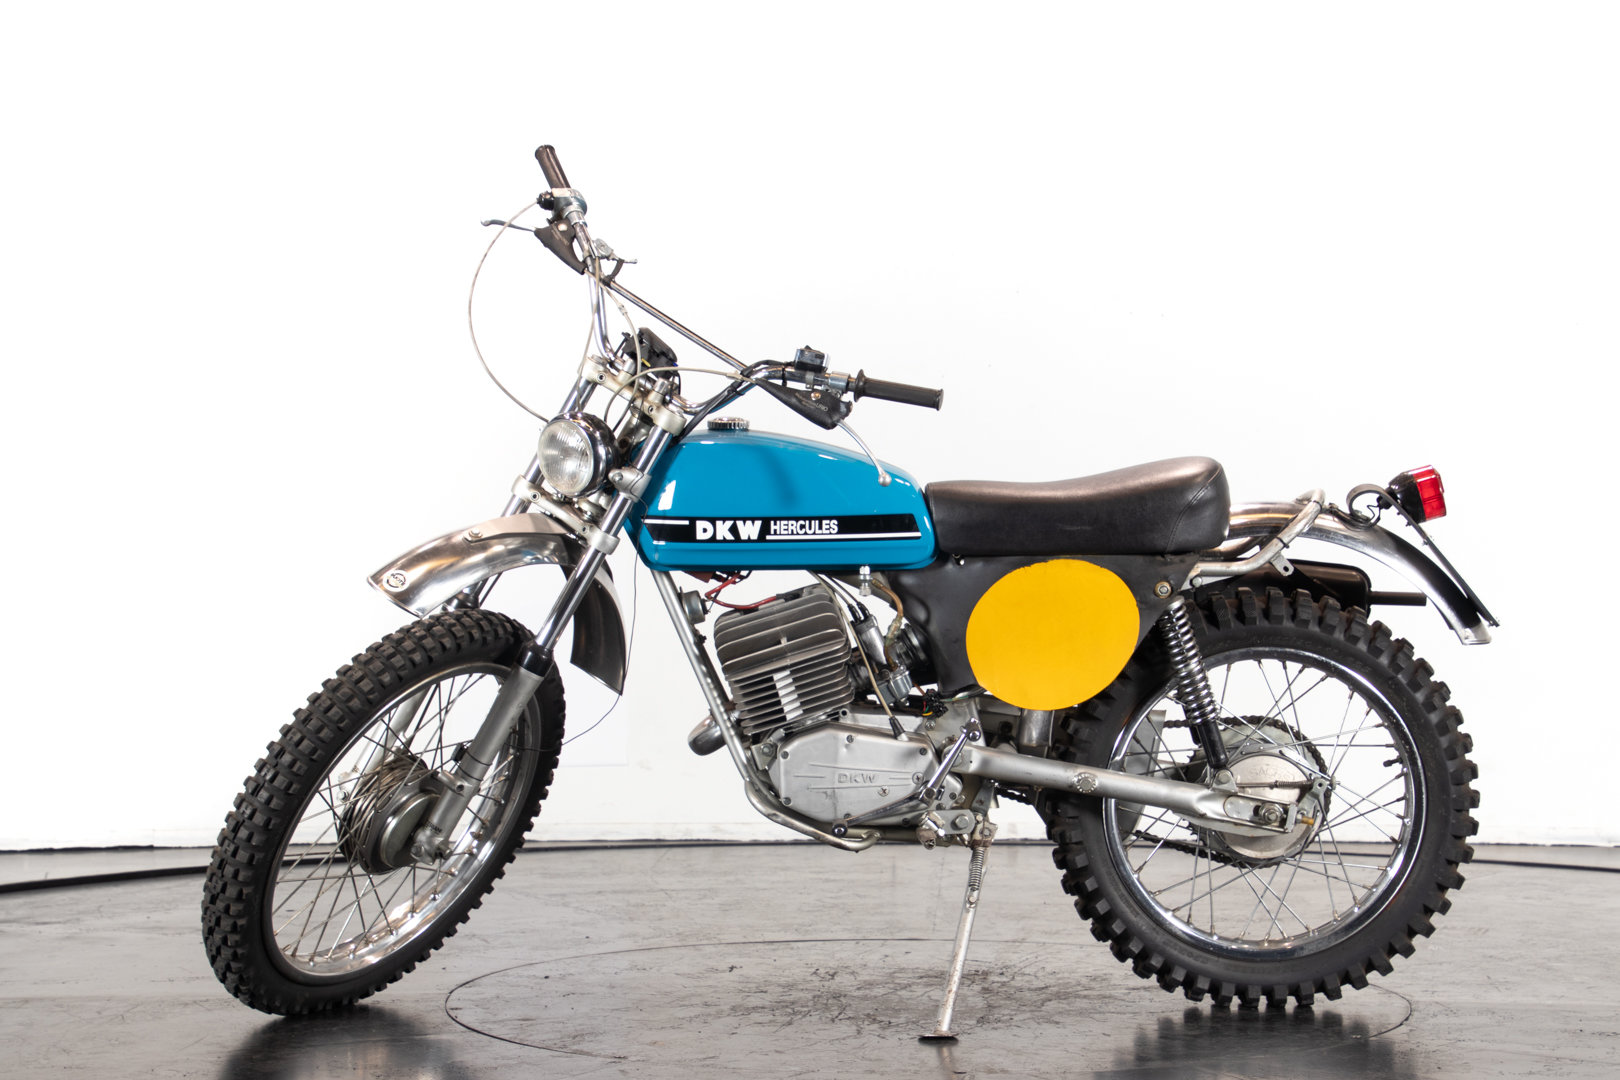 DKW - HERCULES 125 GS - 1973 For Sale (picture 1 of 6)